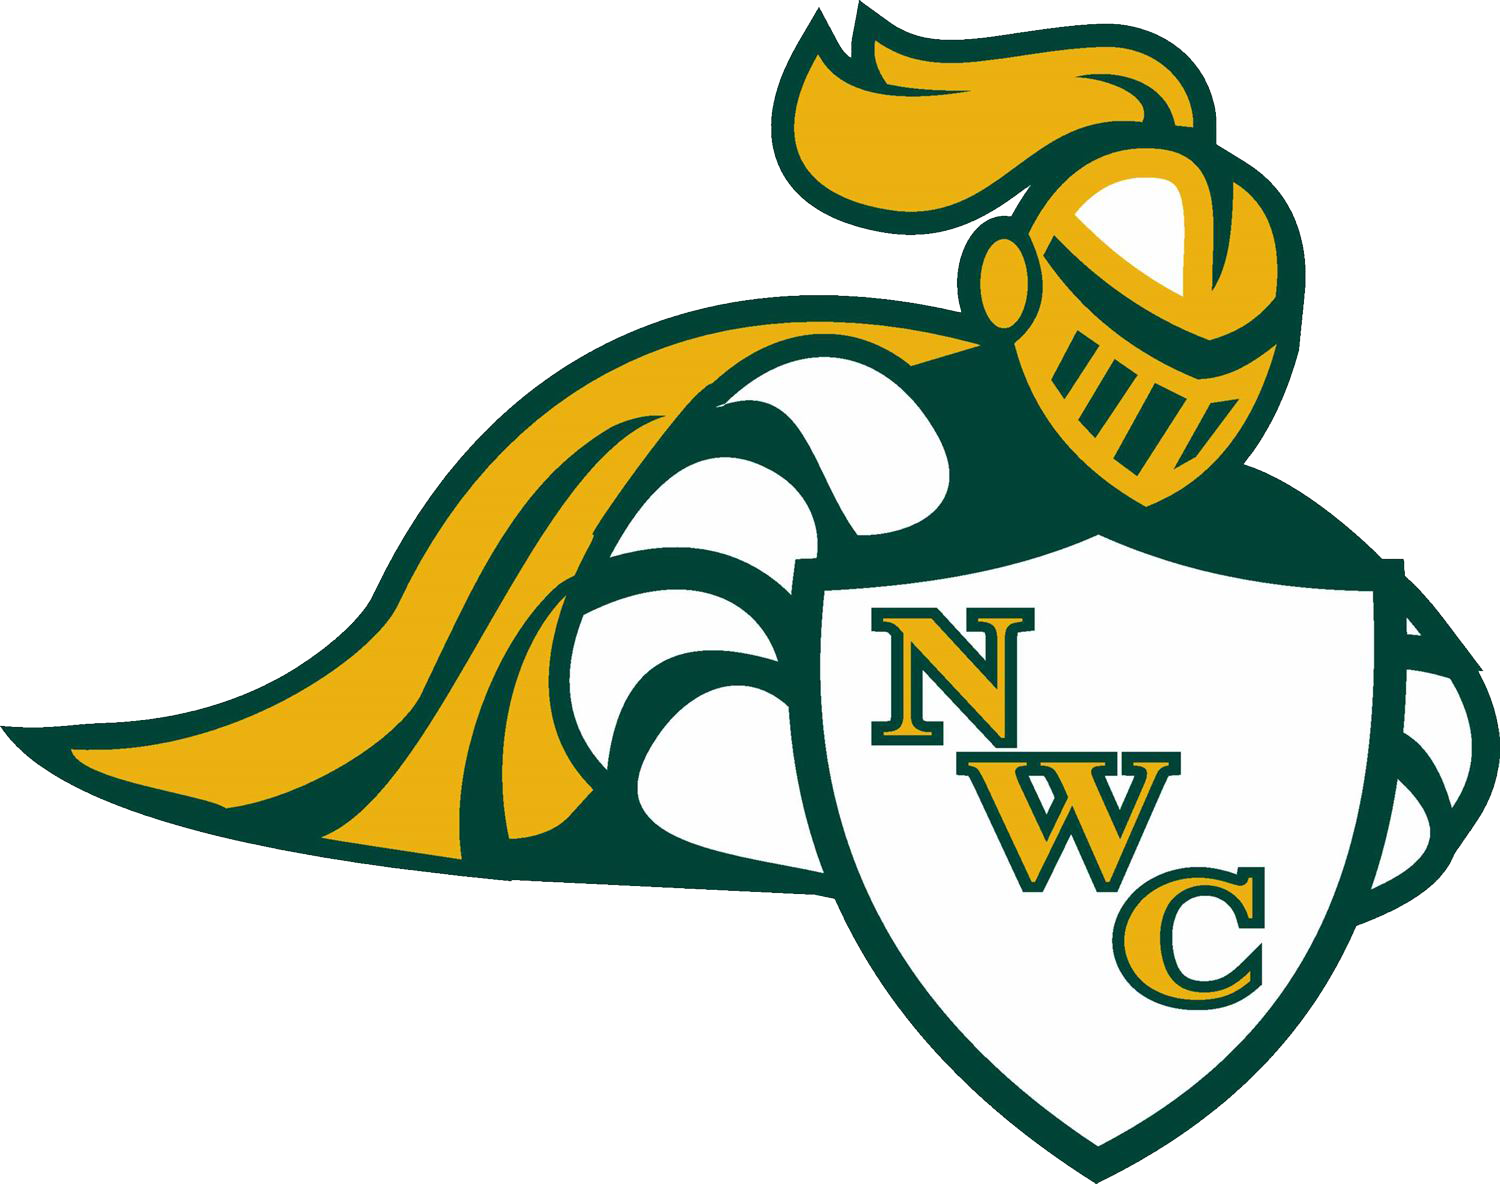 Northwest Christian School logo